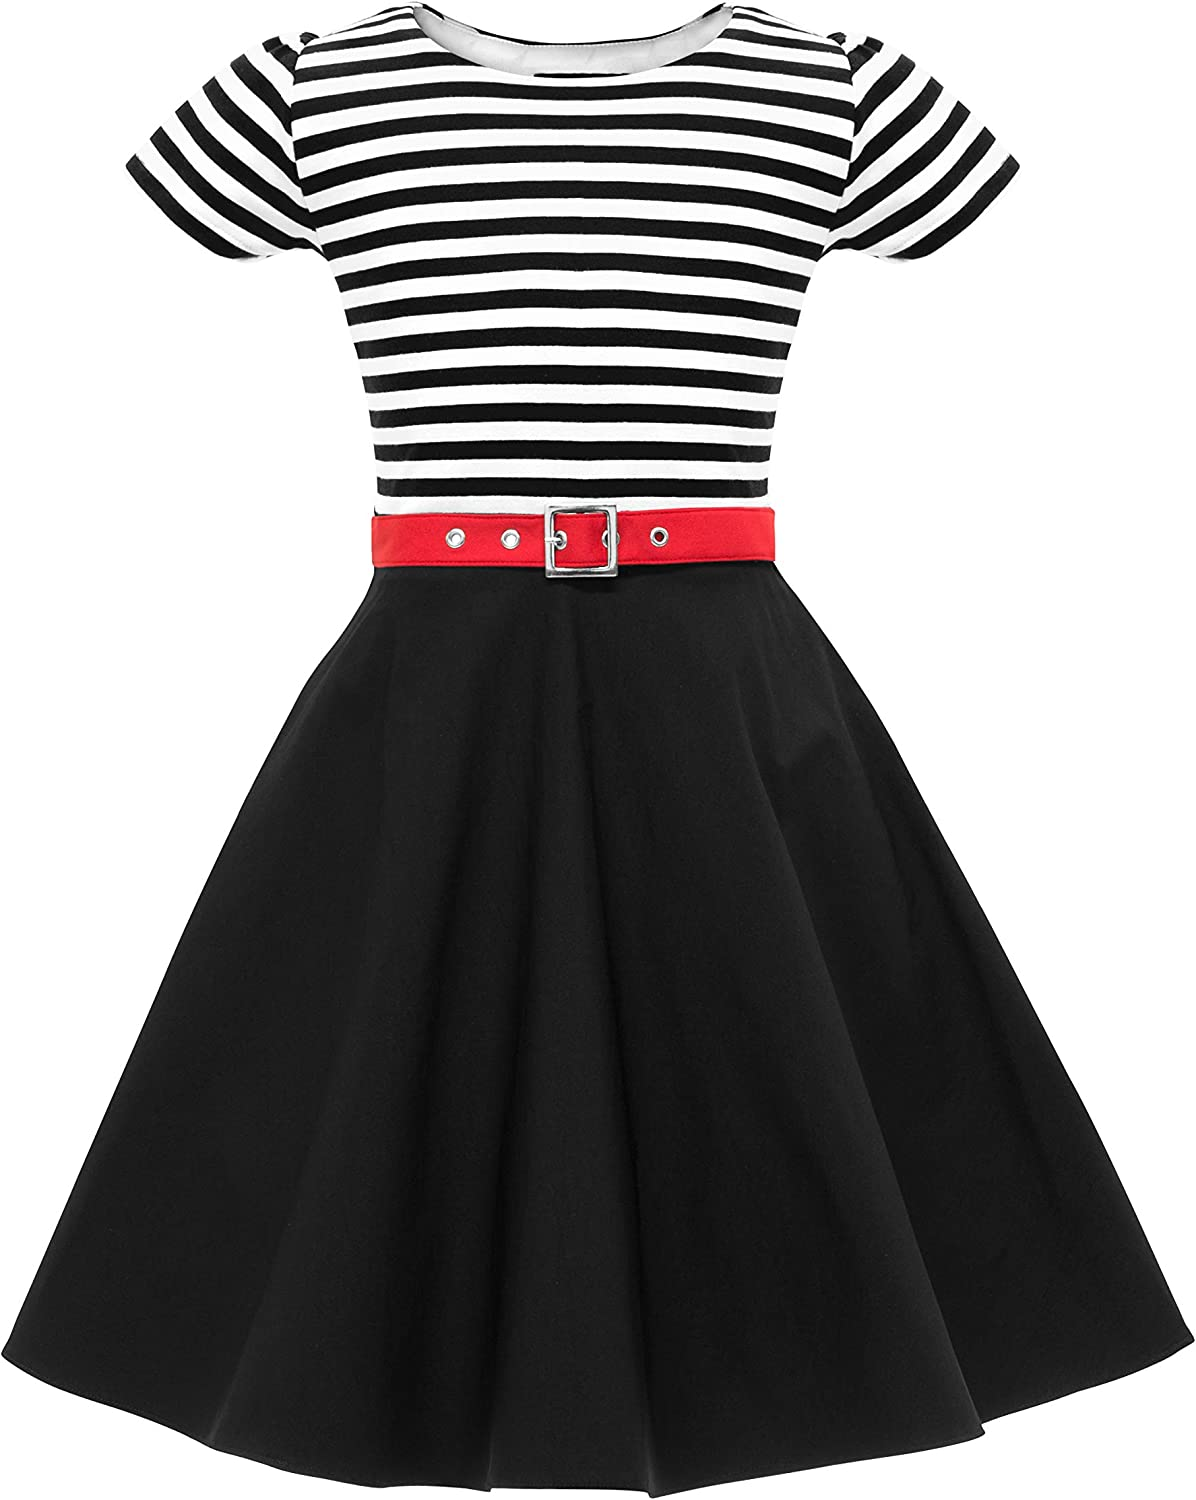 Ranking TOP15 BlackButterfly Kids 'Maria' Low price Vintage Striped Pin Up Dress